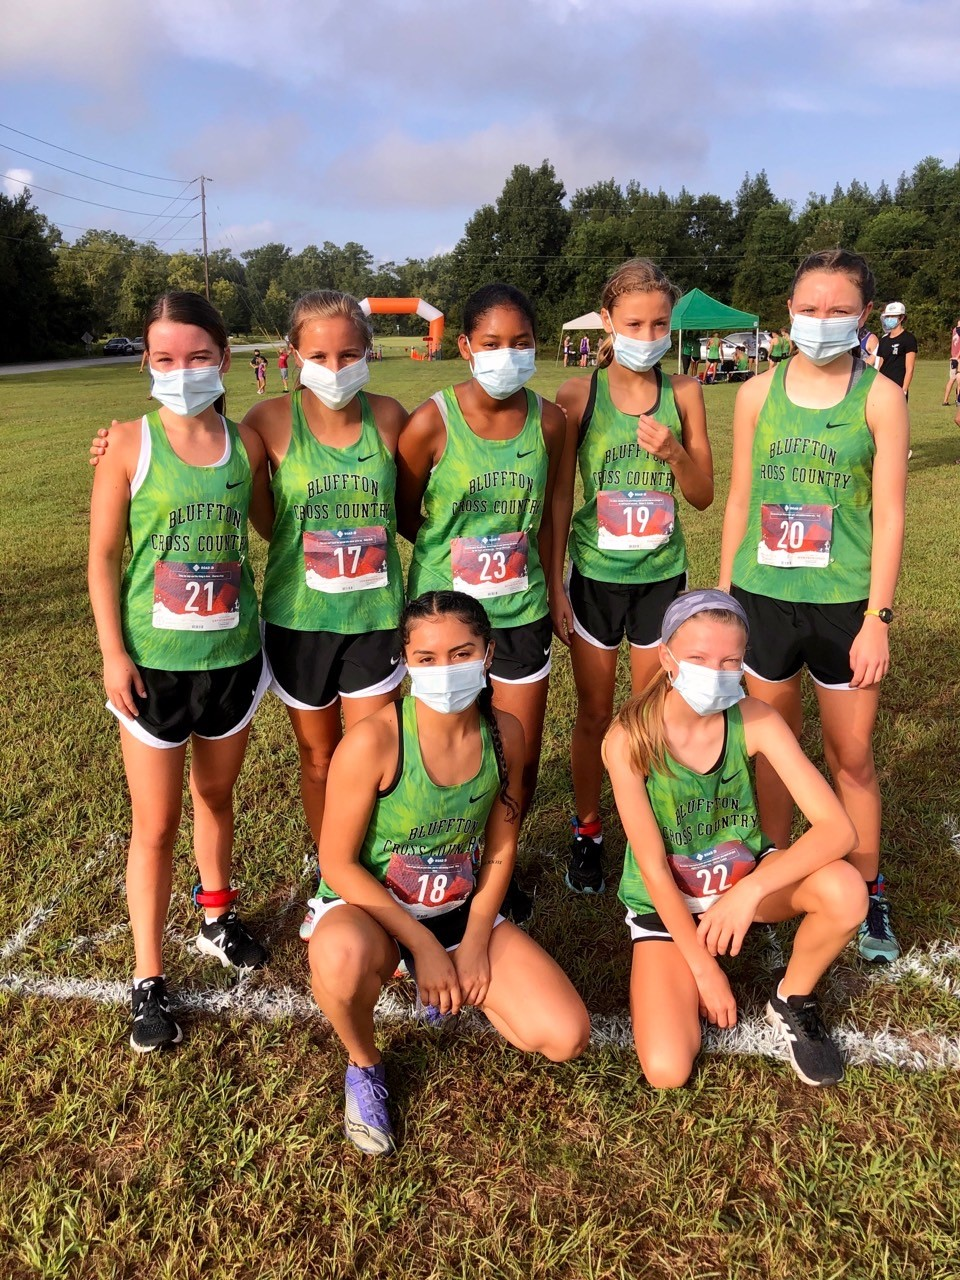 2020 Cross Country Habersham Meet Results (9/12)